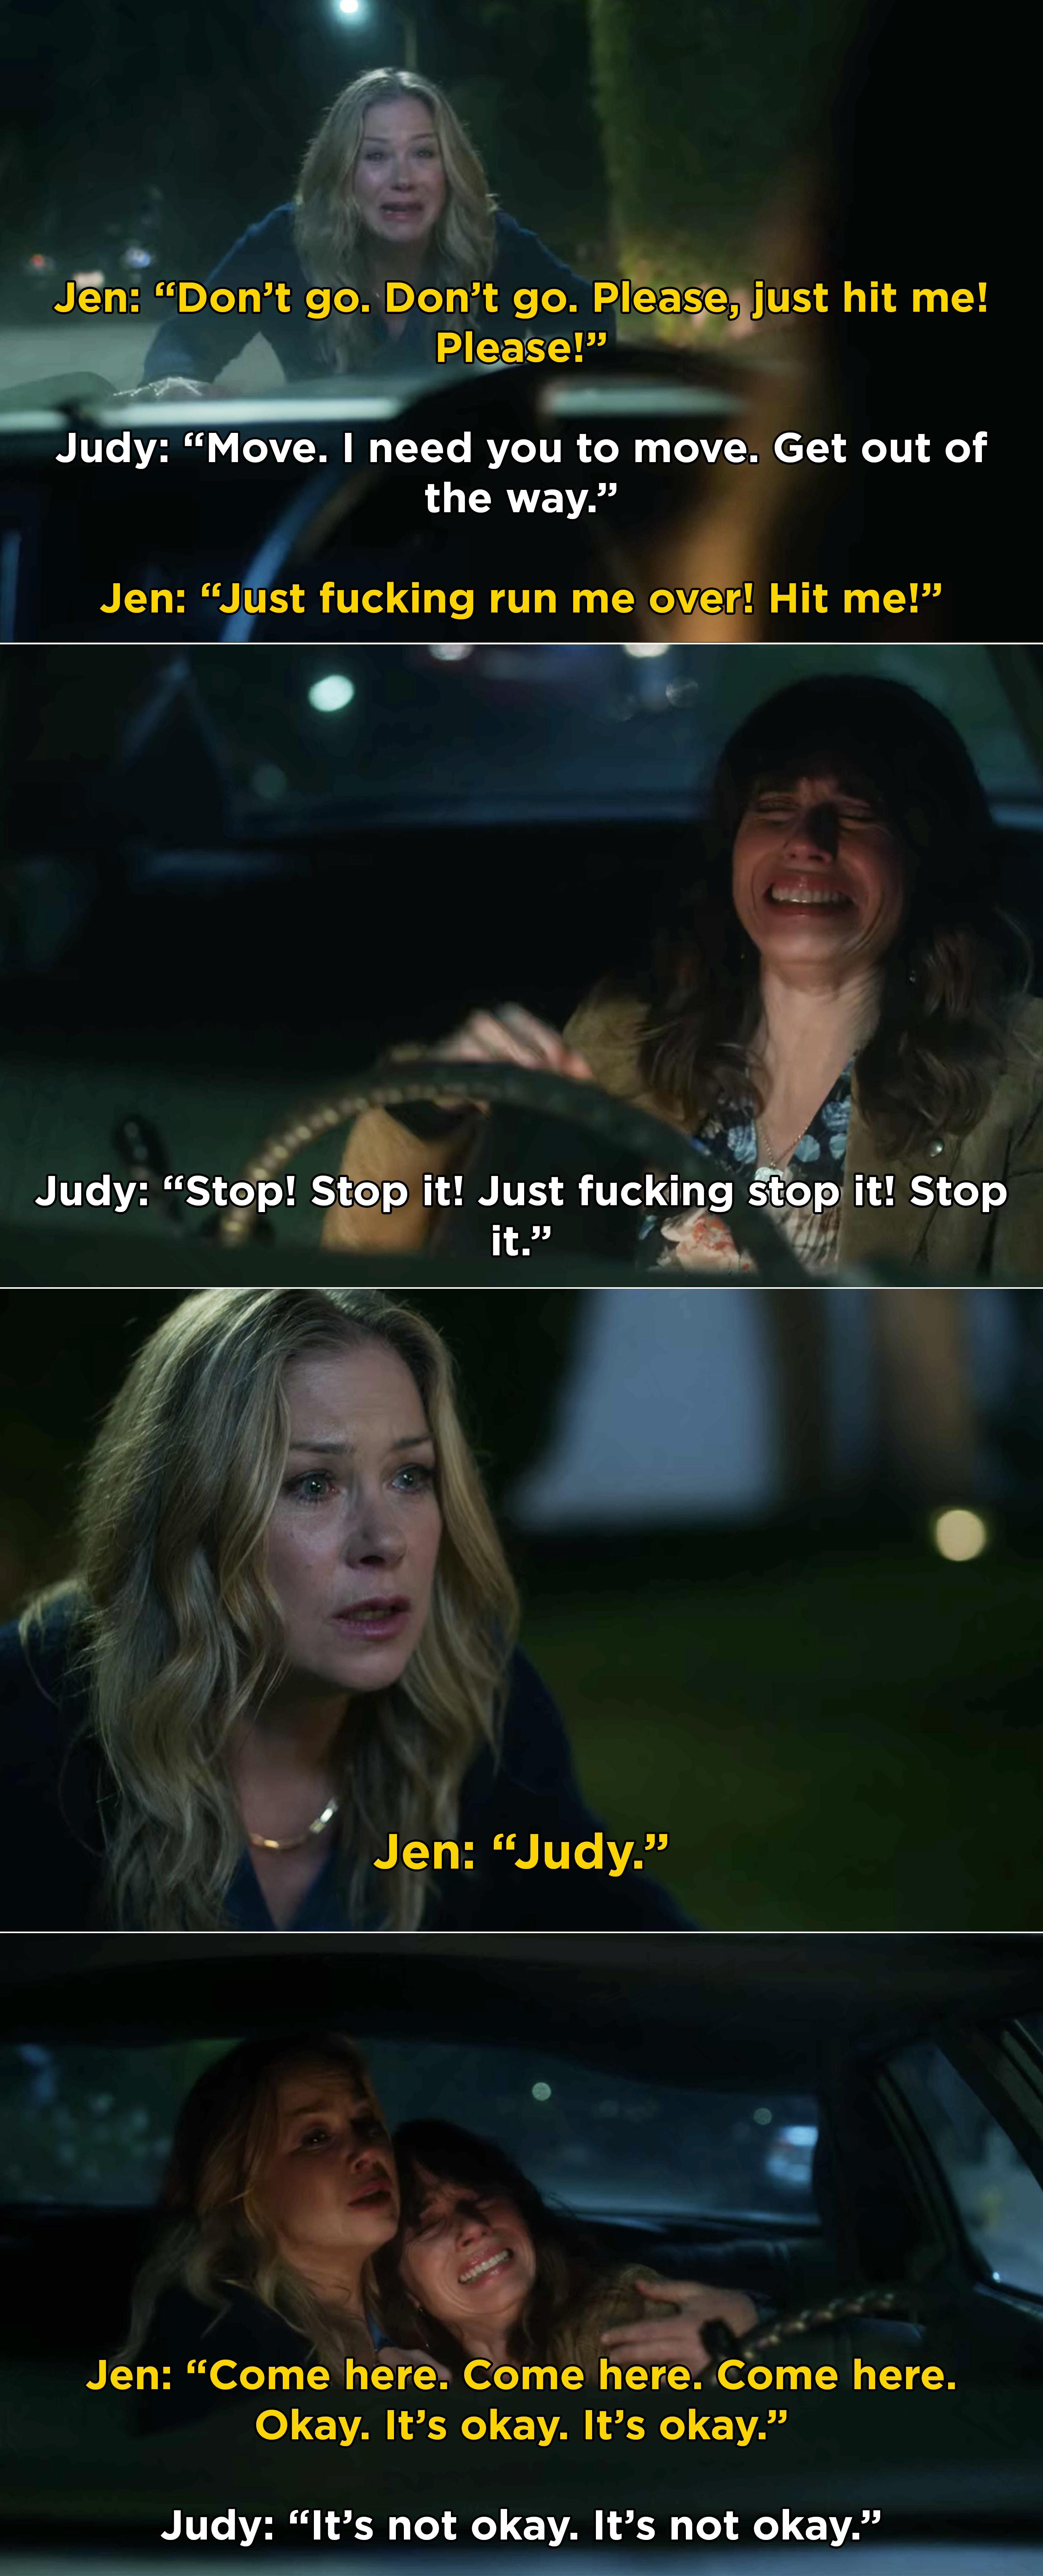 Jen pleading with Judy to run her over, but Judy starting to sob and ultimately, Jen gets in the car and consoles her